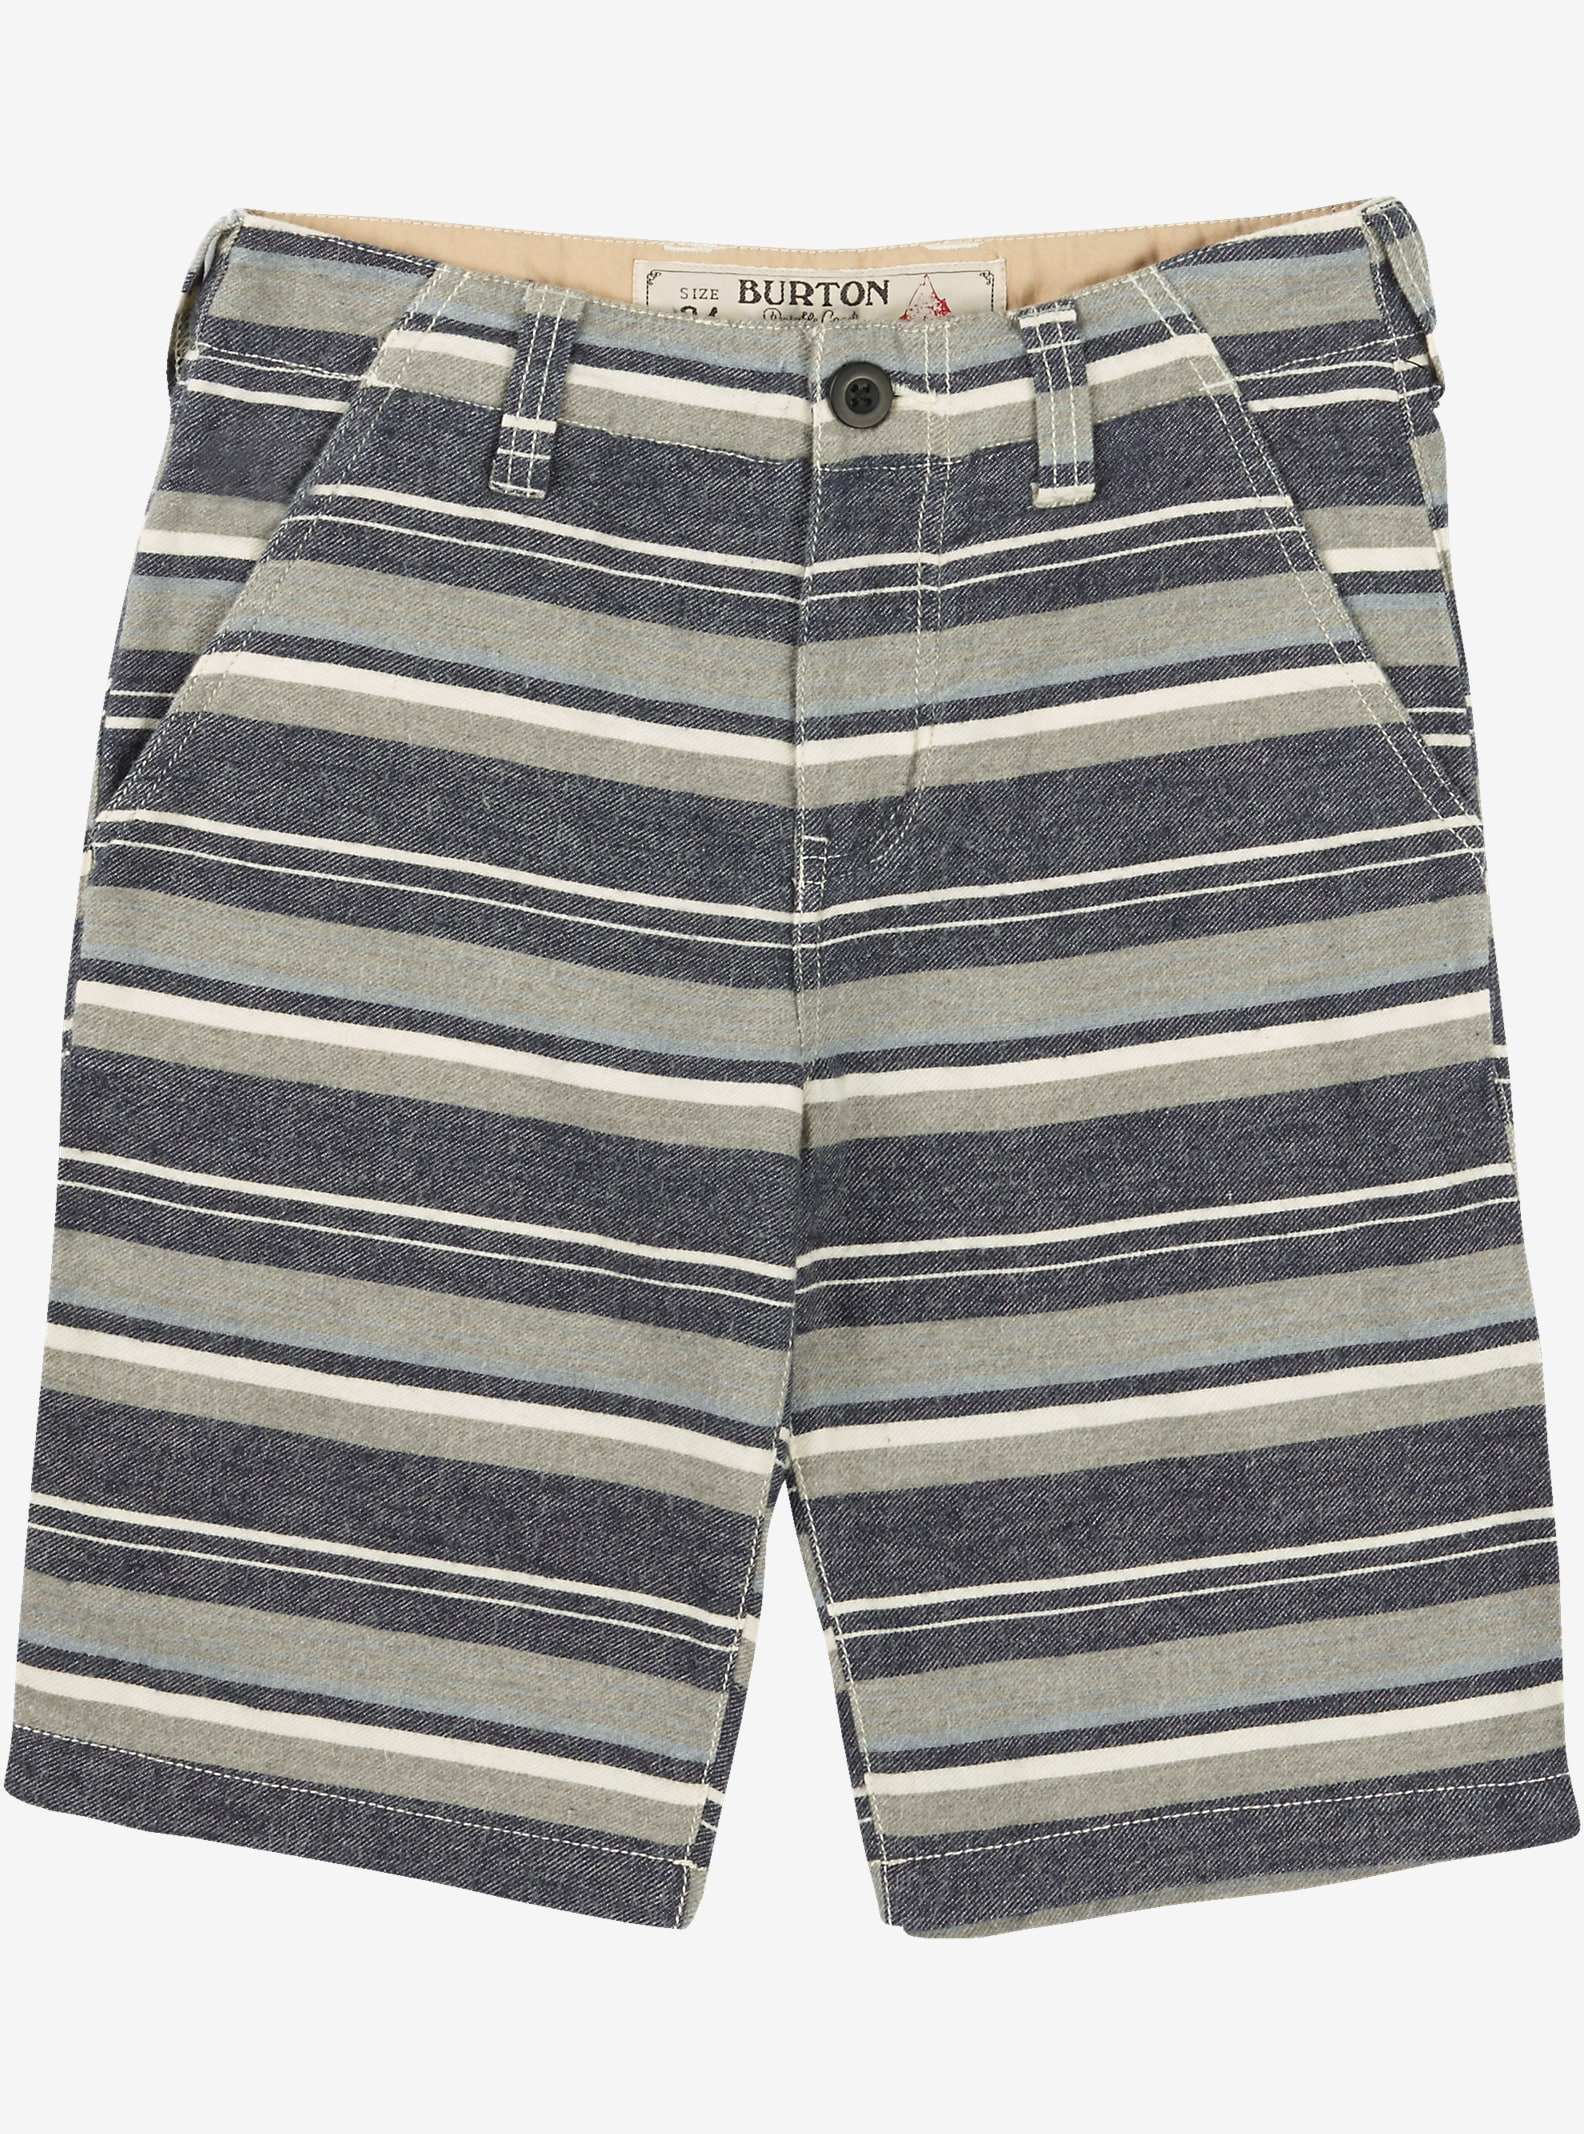 Burton Boys' Kingfield Short shown in Fleck Stripe